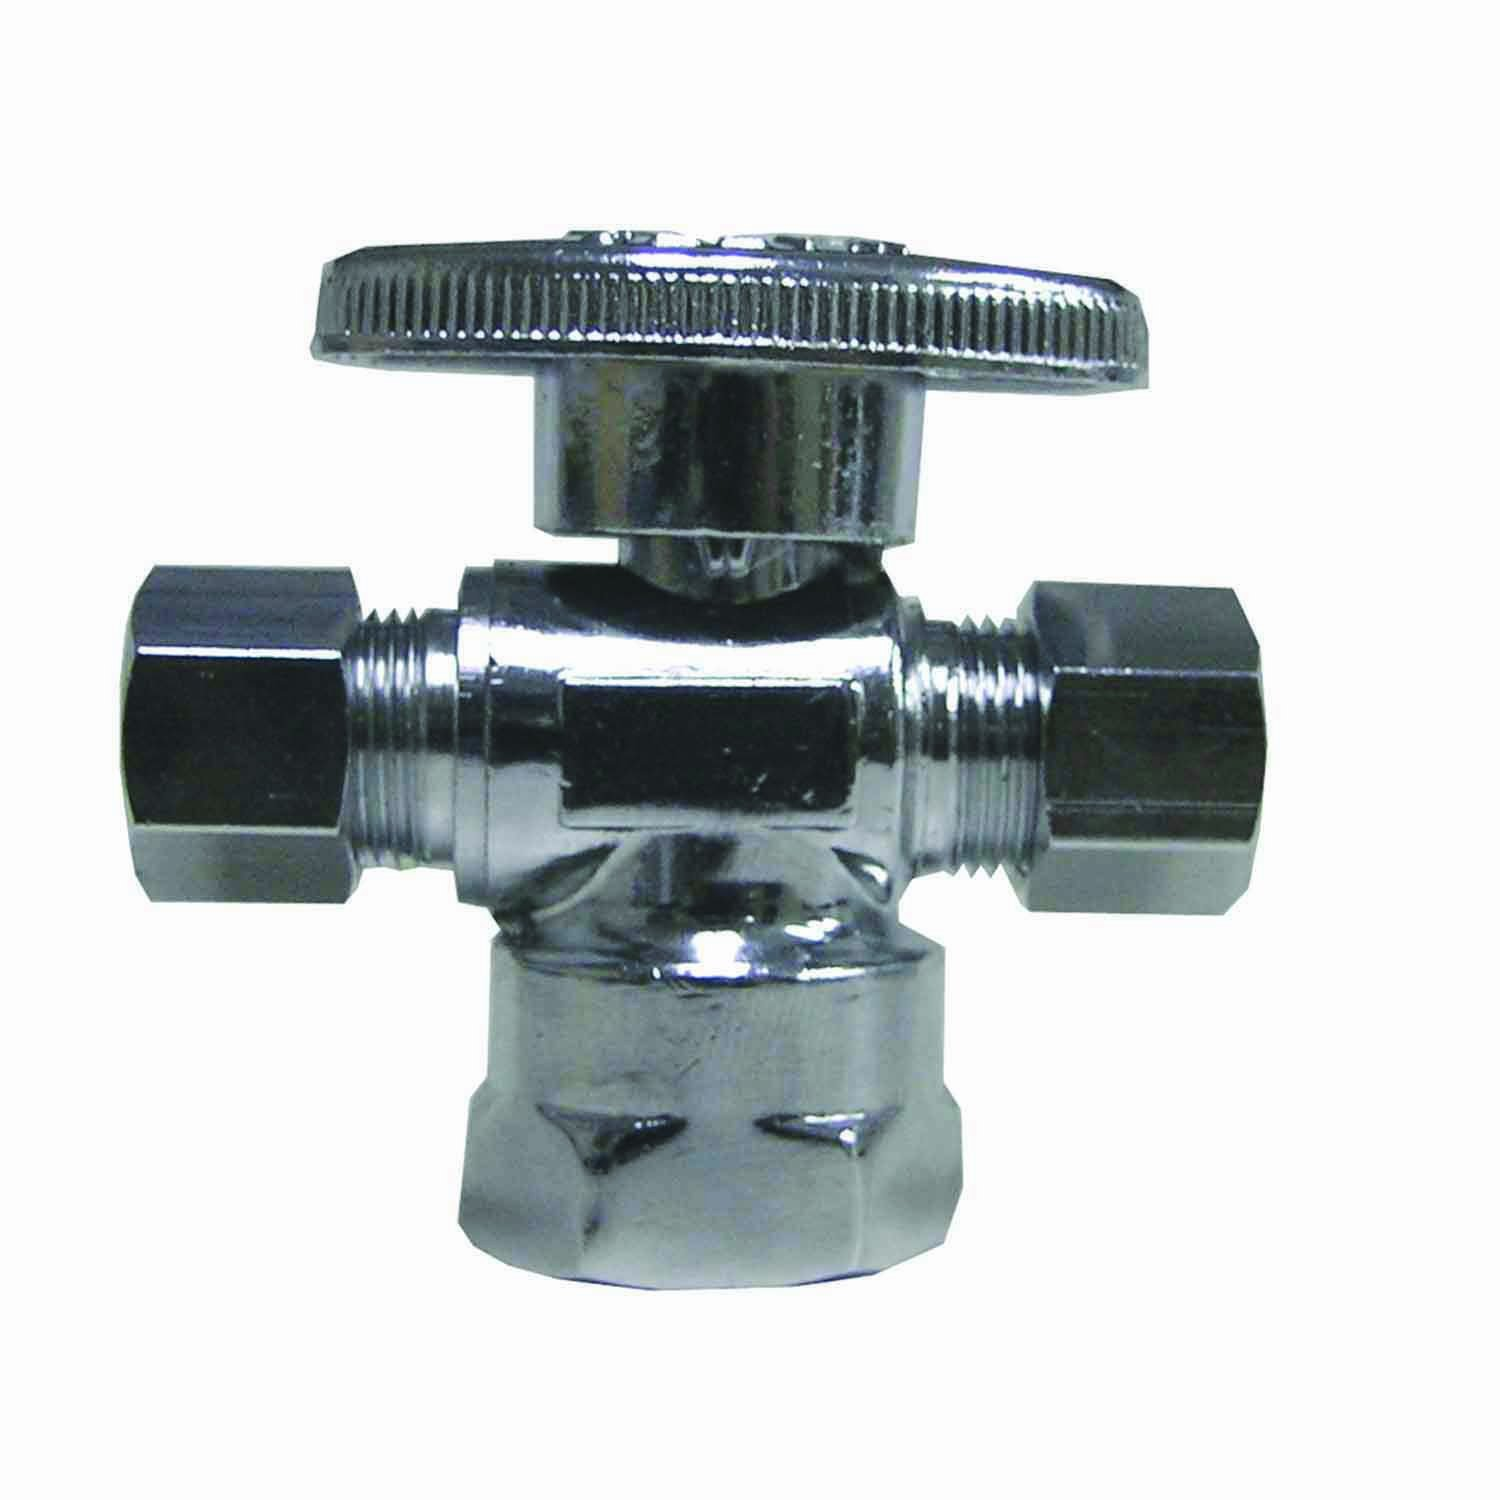 watts lfpbqt113 quarter turn 3way valve 12inch fip by 38inch comp by 38inch comp pipe fittings amazoncom